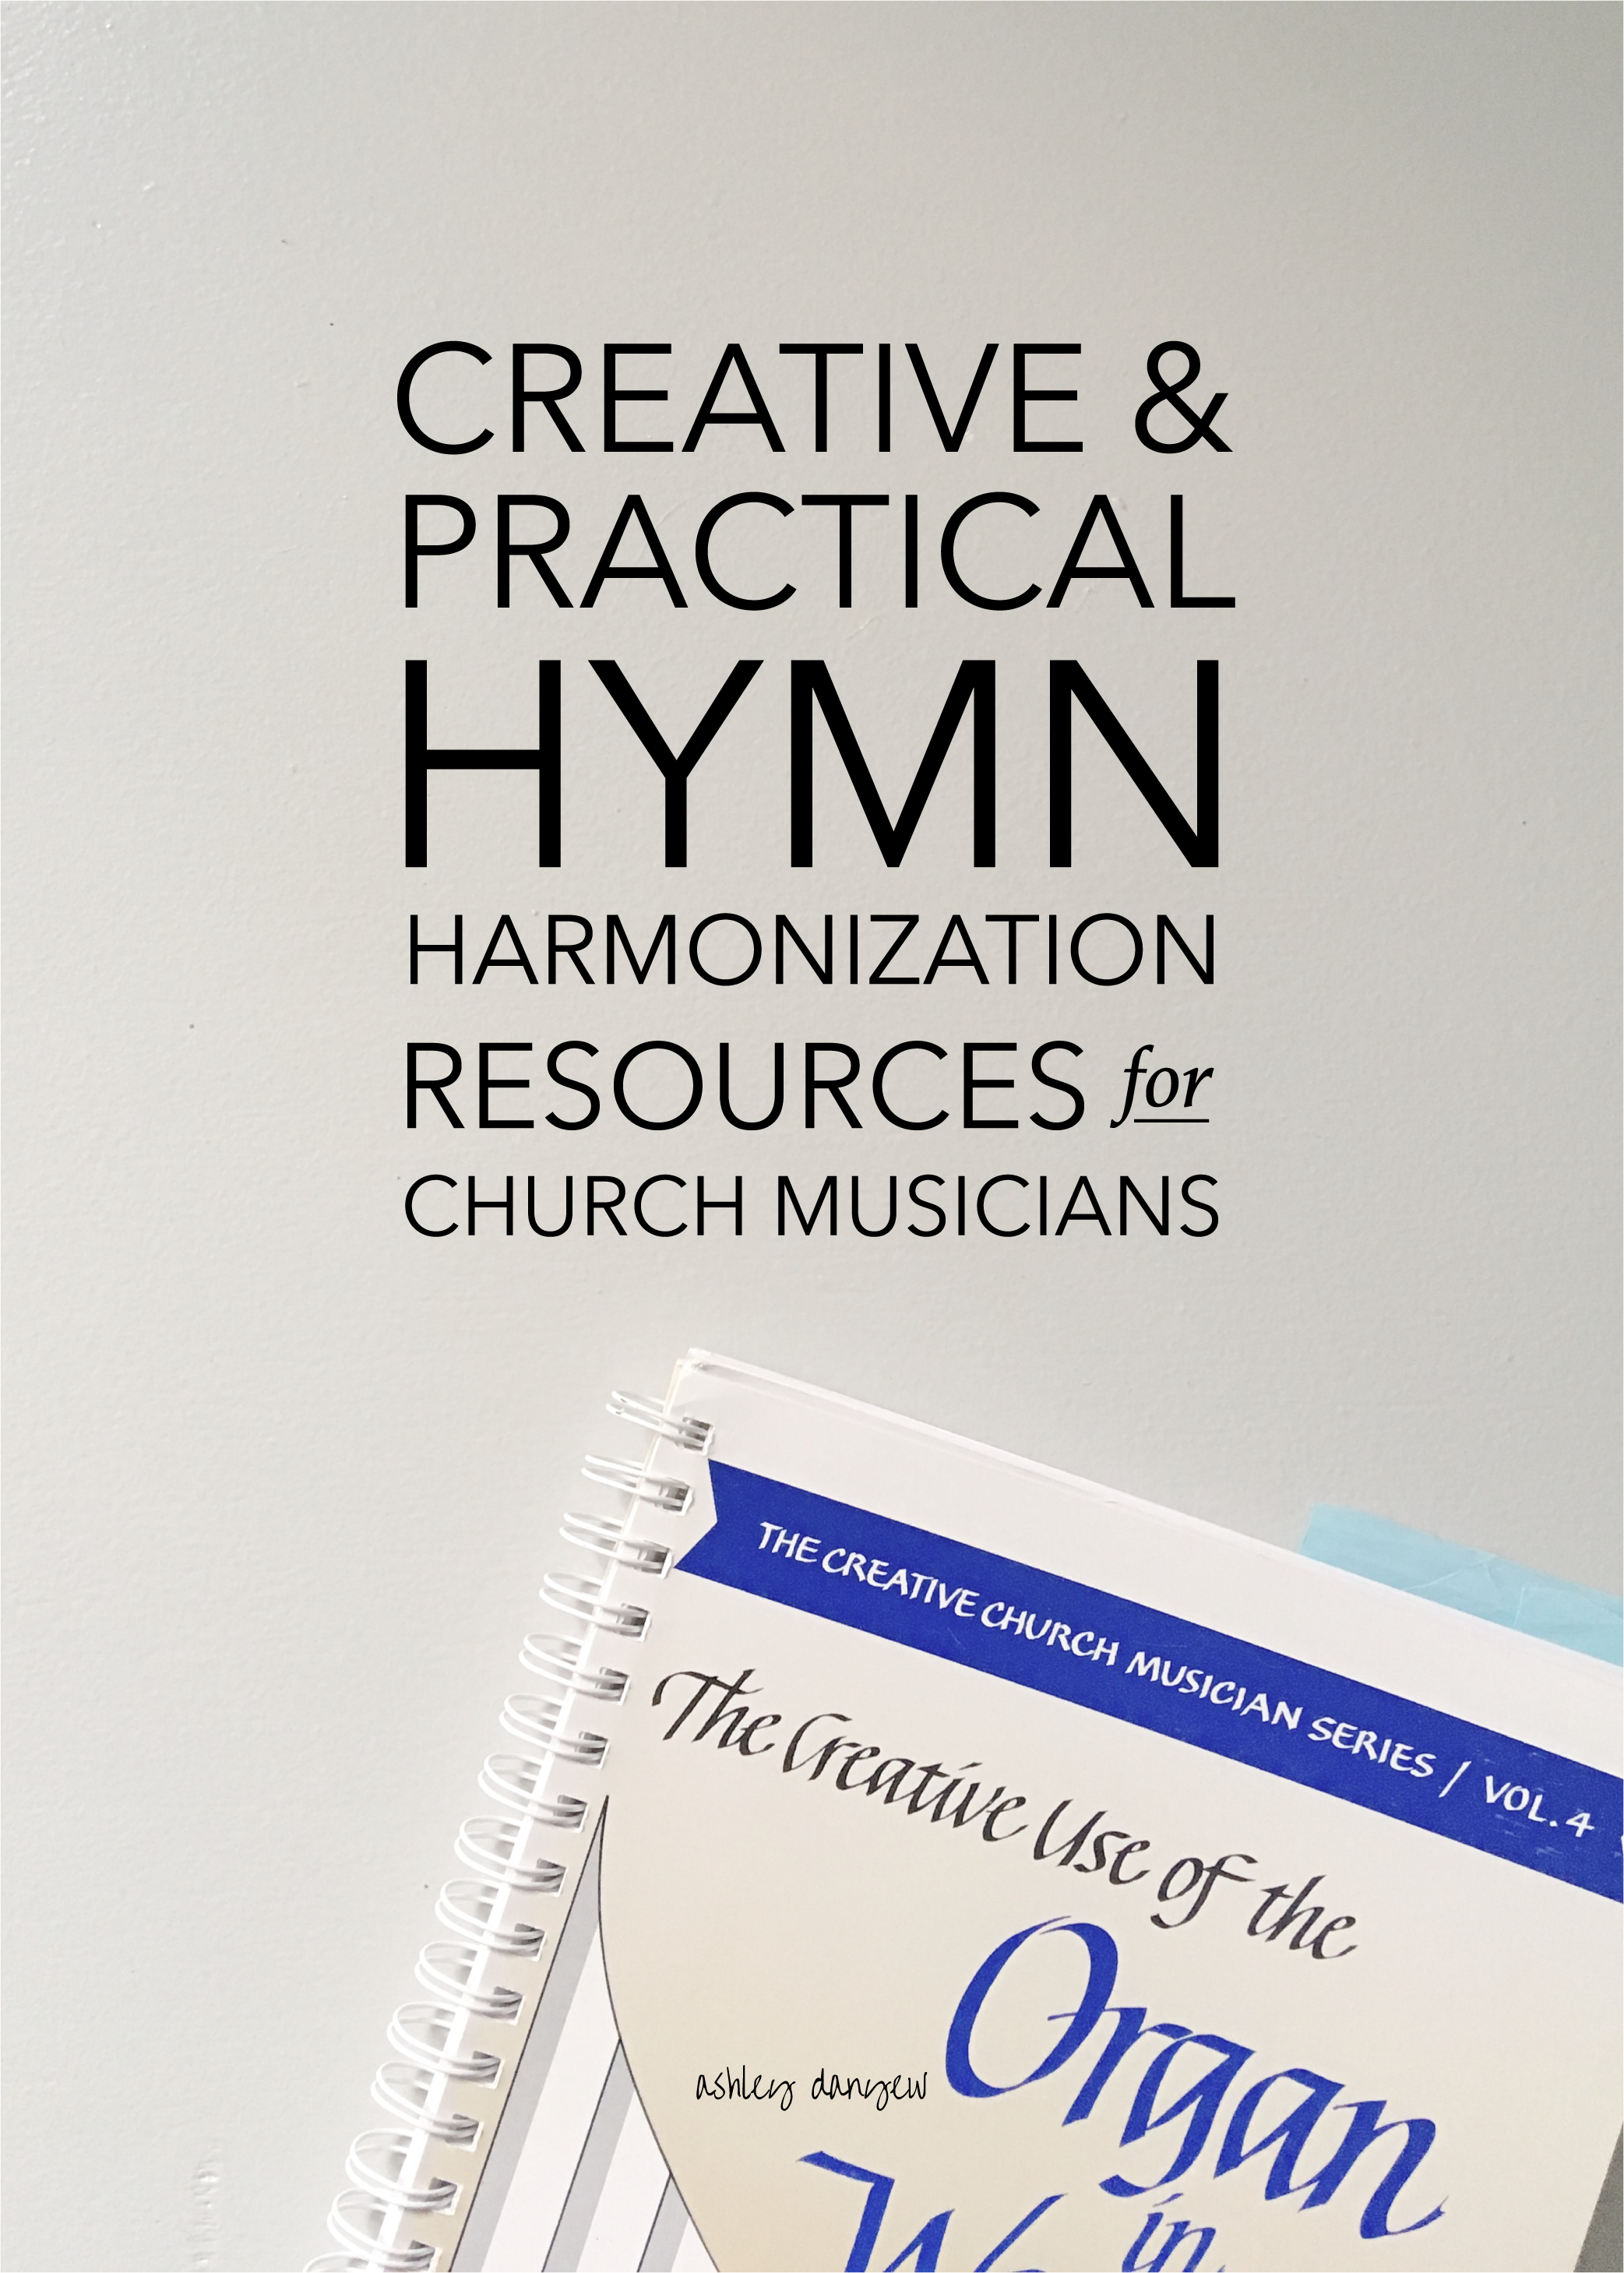 Creative & Practical Hymn Harmonization Resources for Church Musicians.png